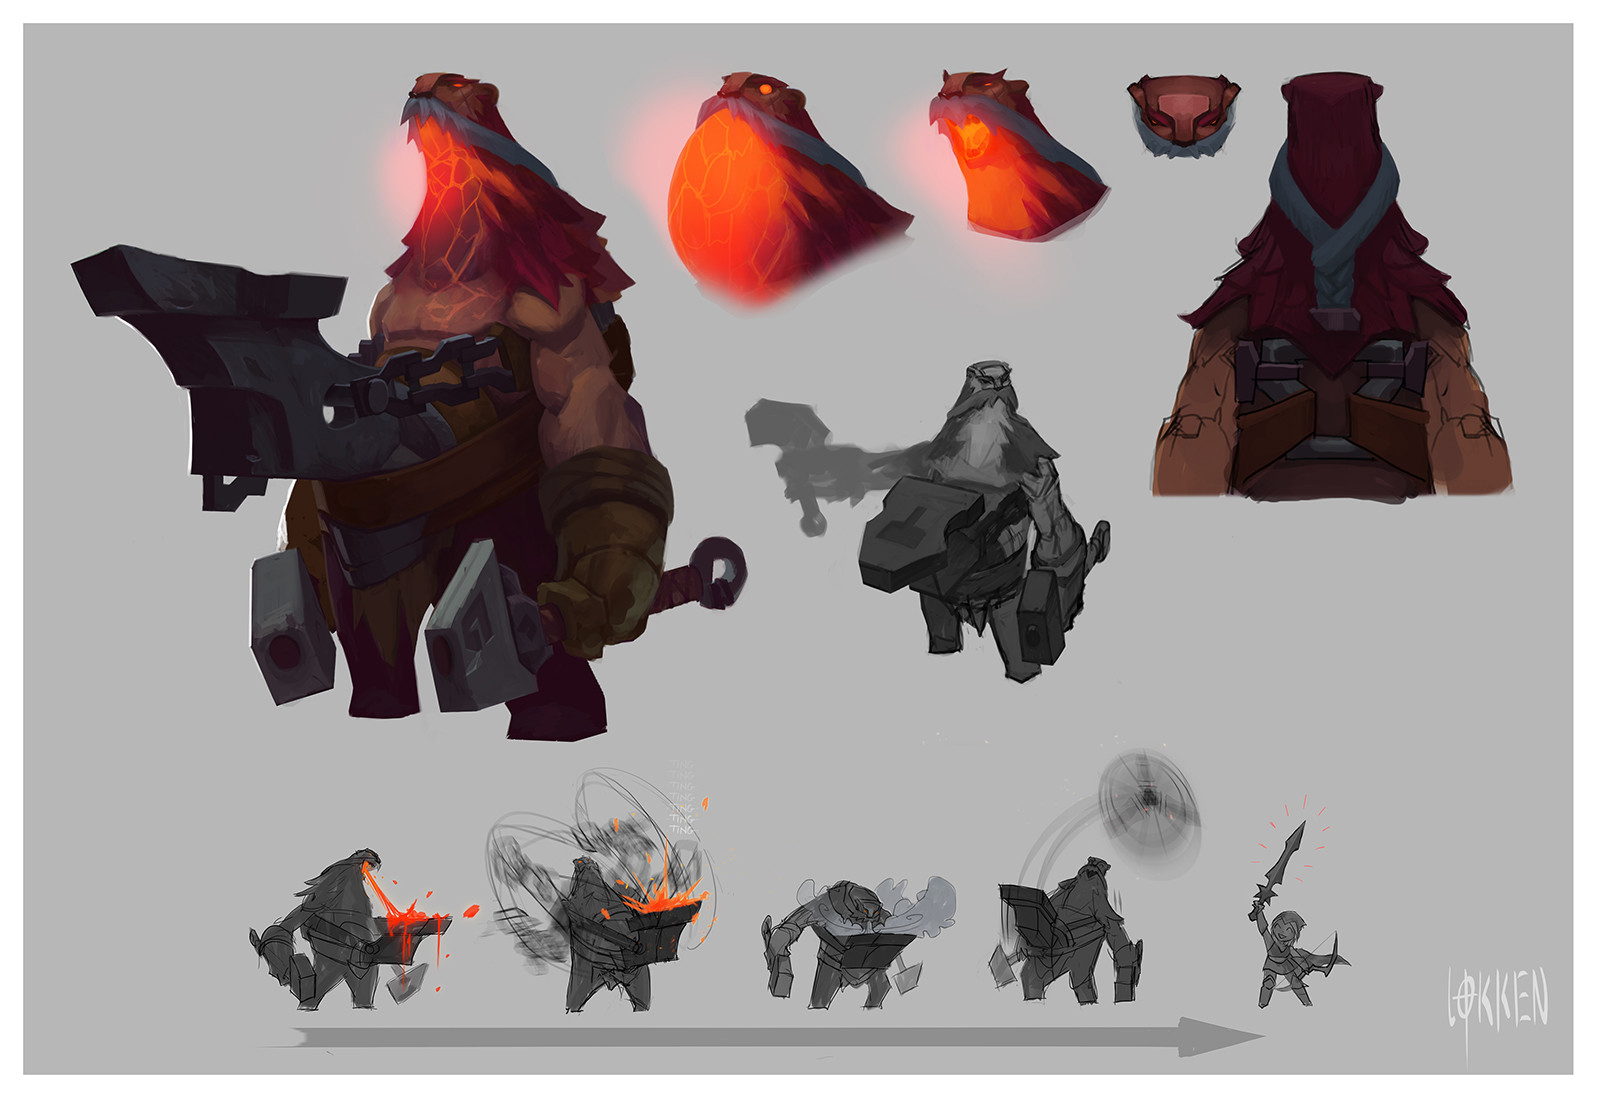 Living Forge (Ornn) Early Concepts